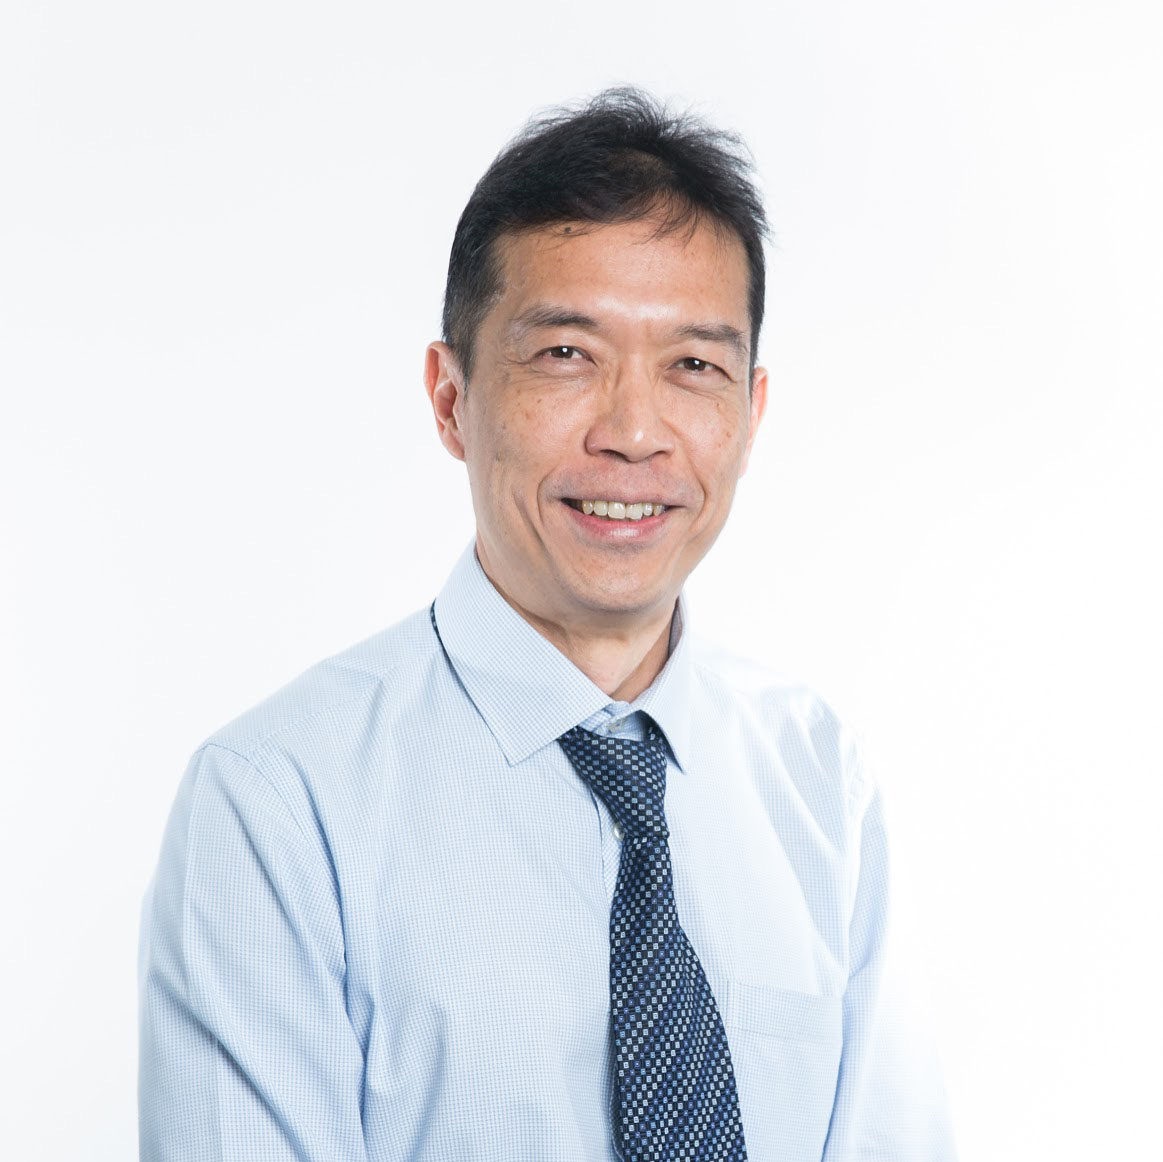 Raymond Lee - Dokter Jantung Singapura - Cardiology (Heart & Vascular) - Not Otherwise Specified (NOS)